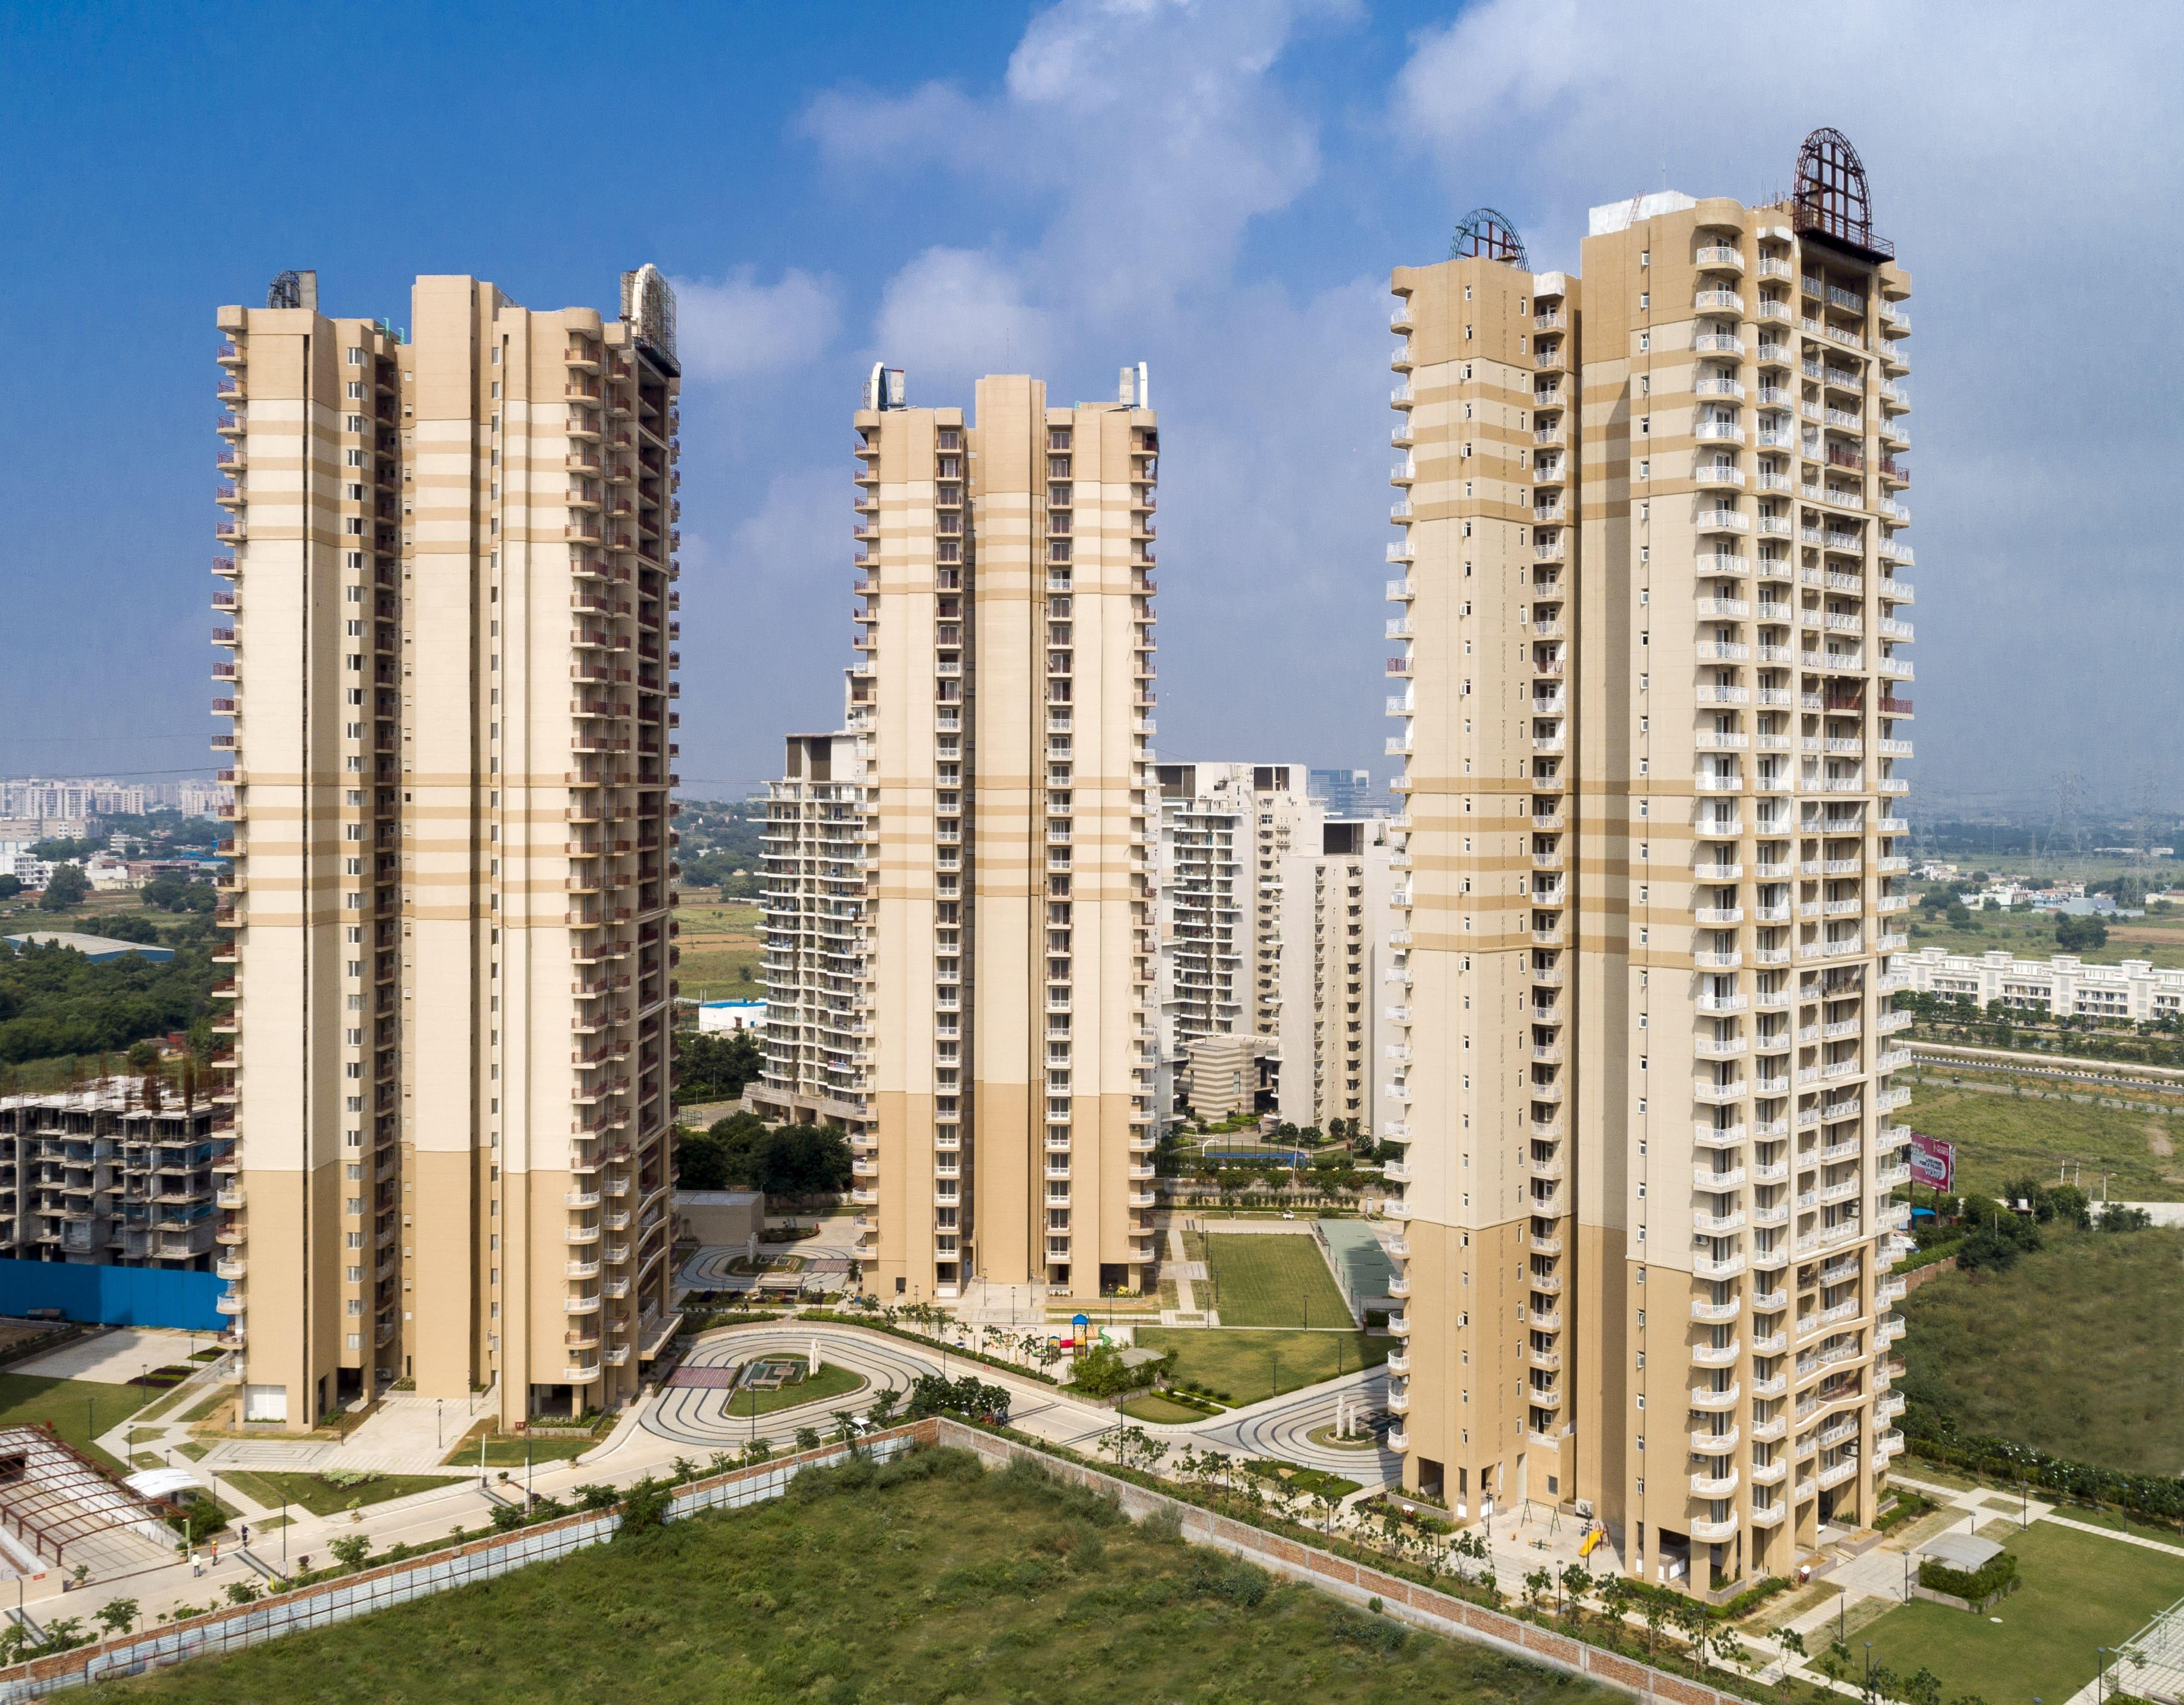 Aipl The Peaceful Homes Sector 70a Southern Periphery Road Gurgaon Zricks Com